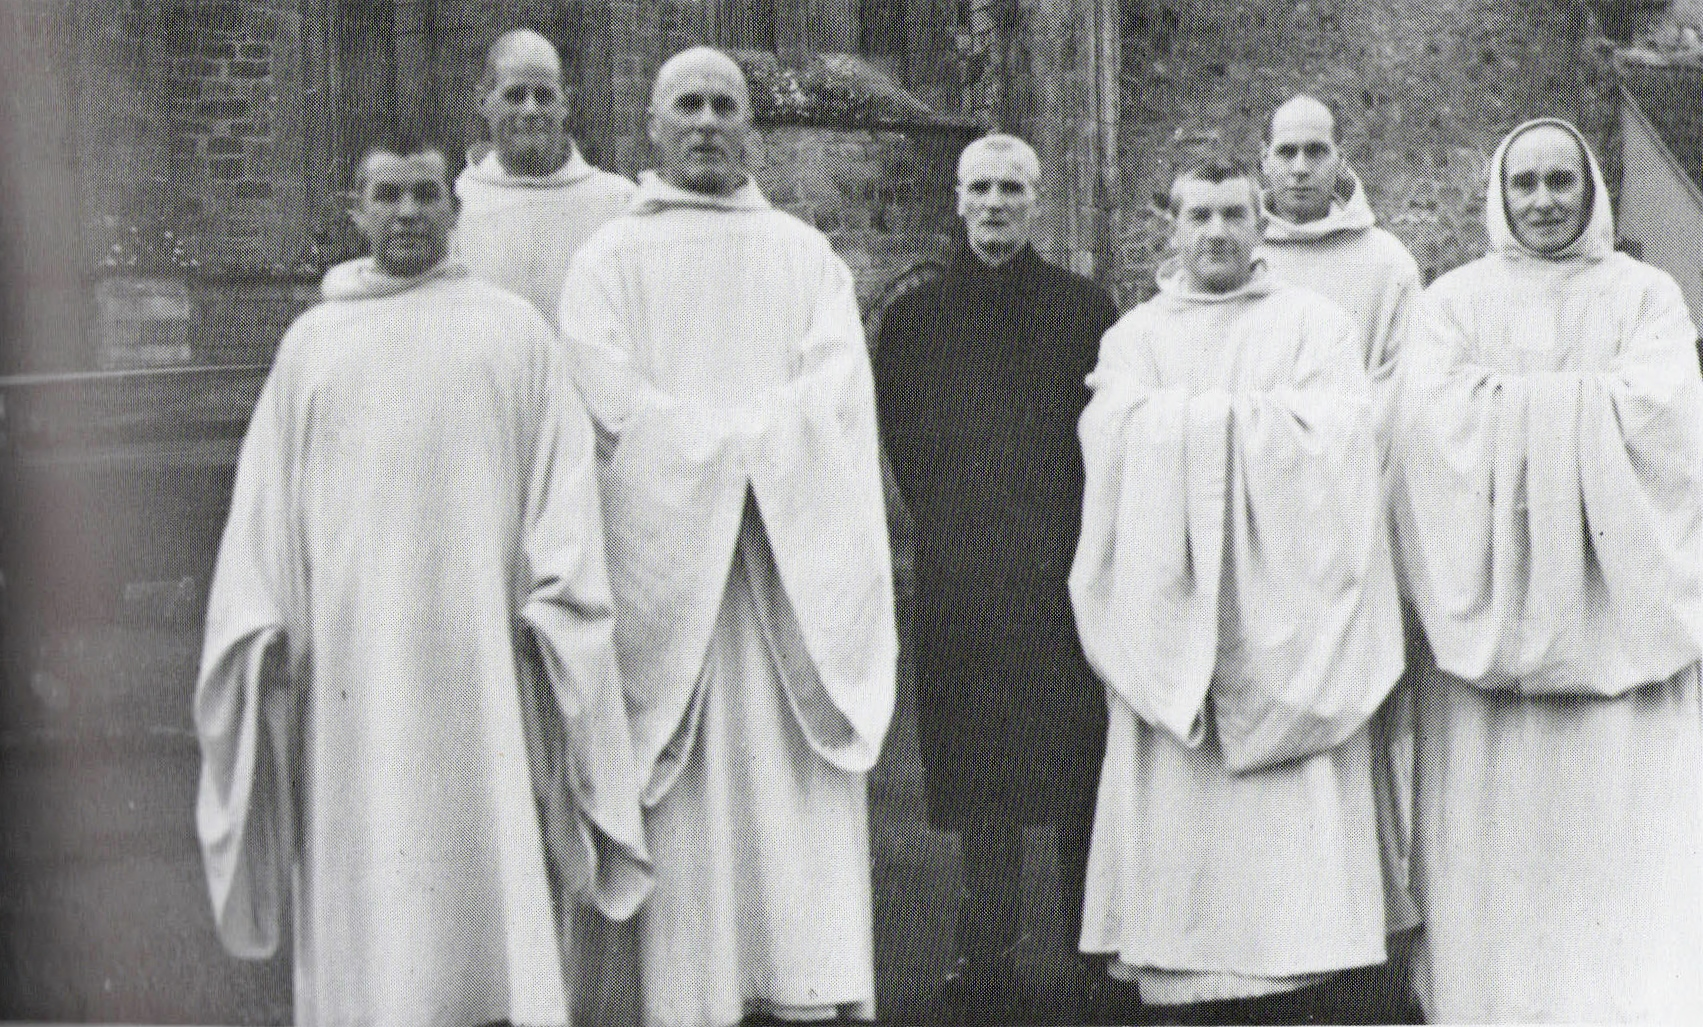 Lay brothers of Pluscarden at their solemn profession, 21st November 1966